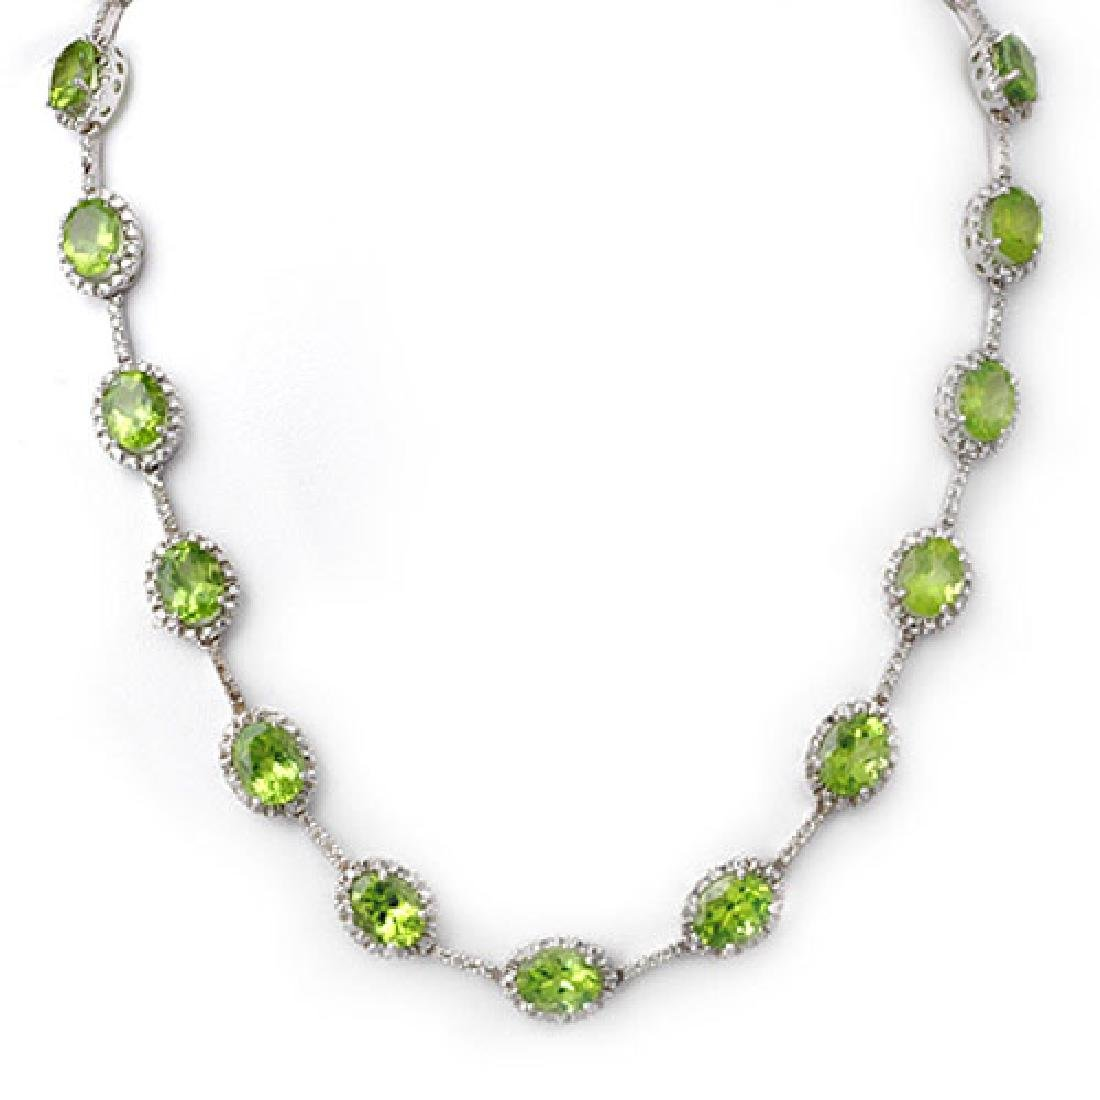 45.0 CTW Peridot & Diamond Necklace 10K White Gold